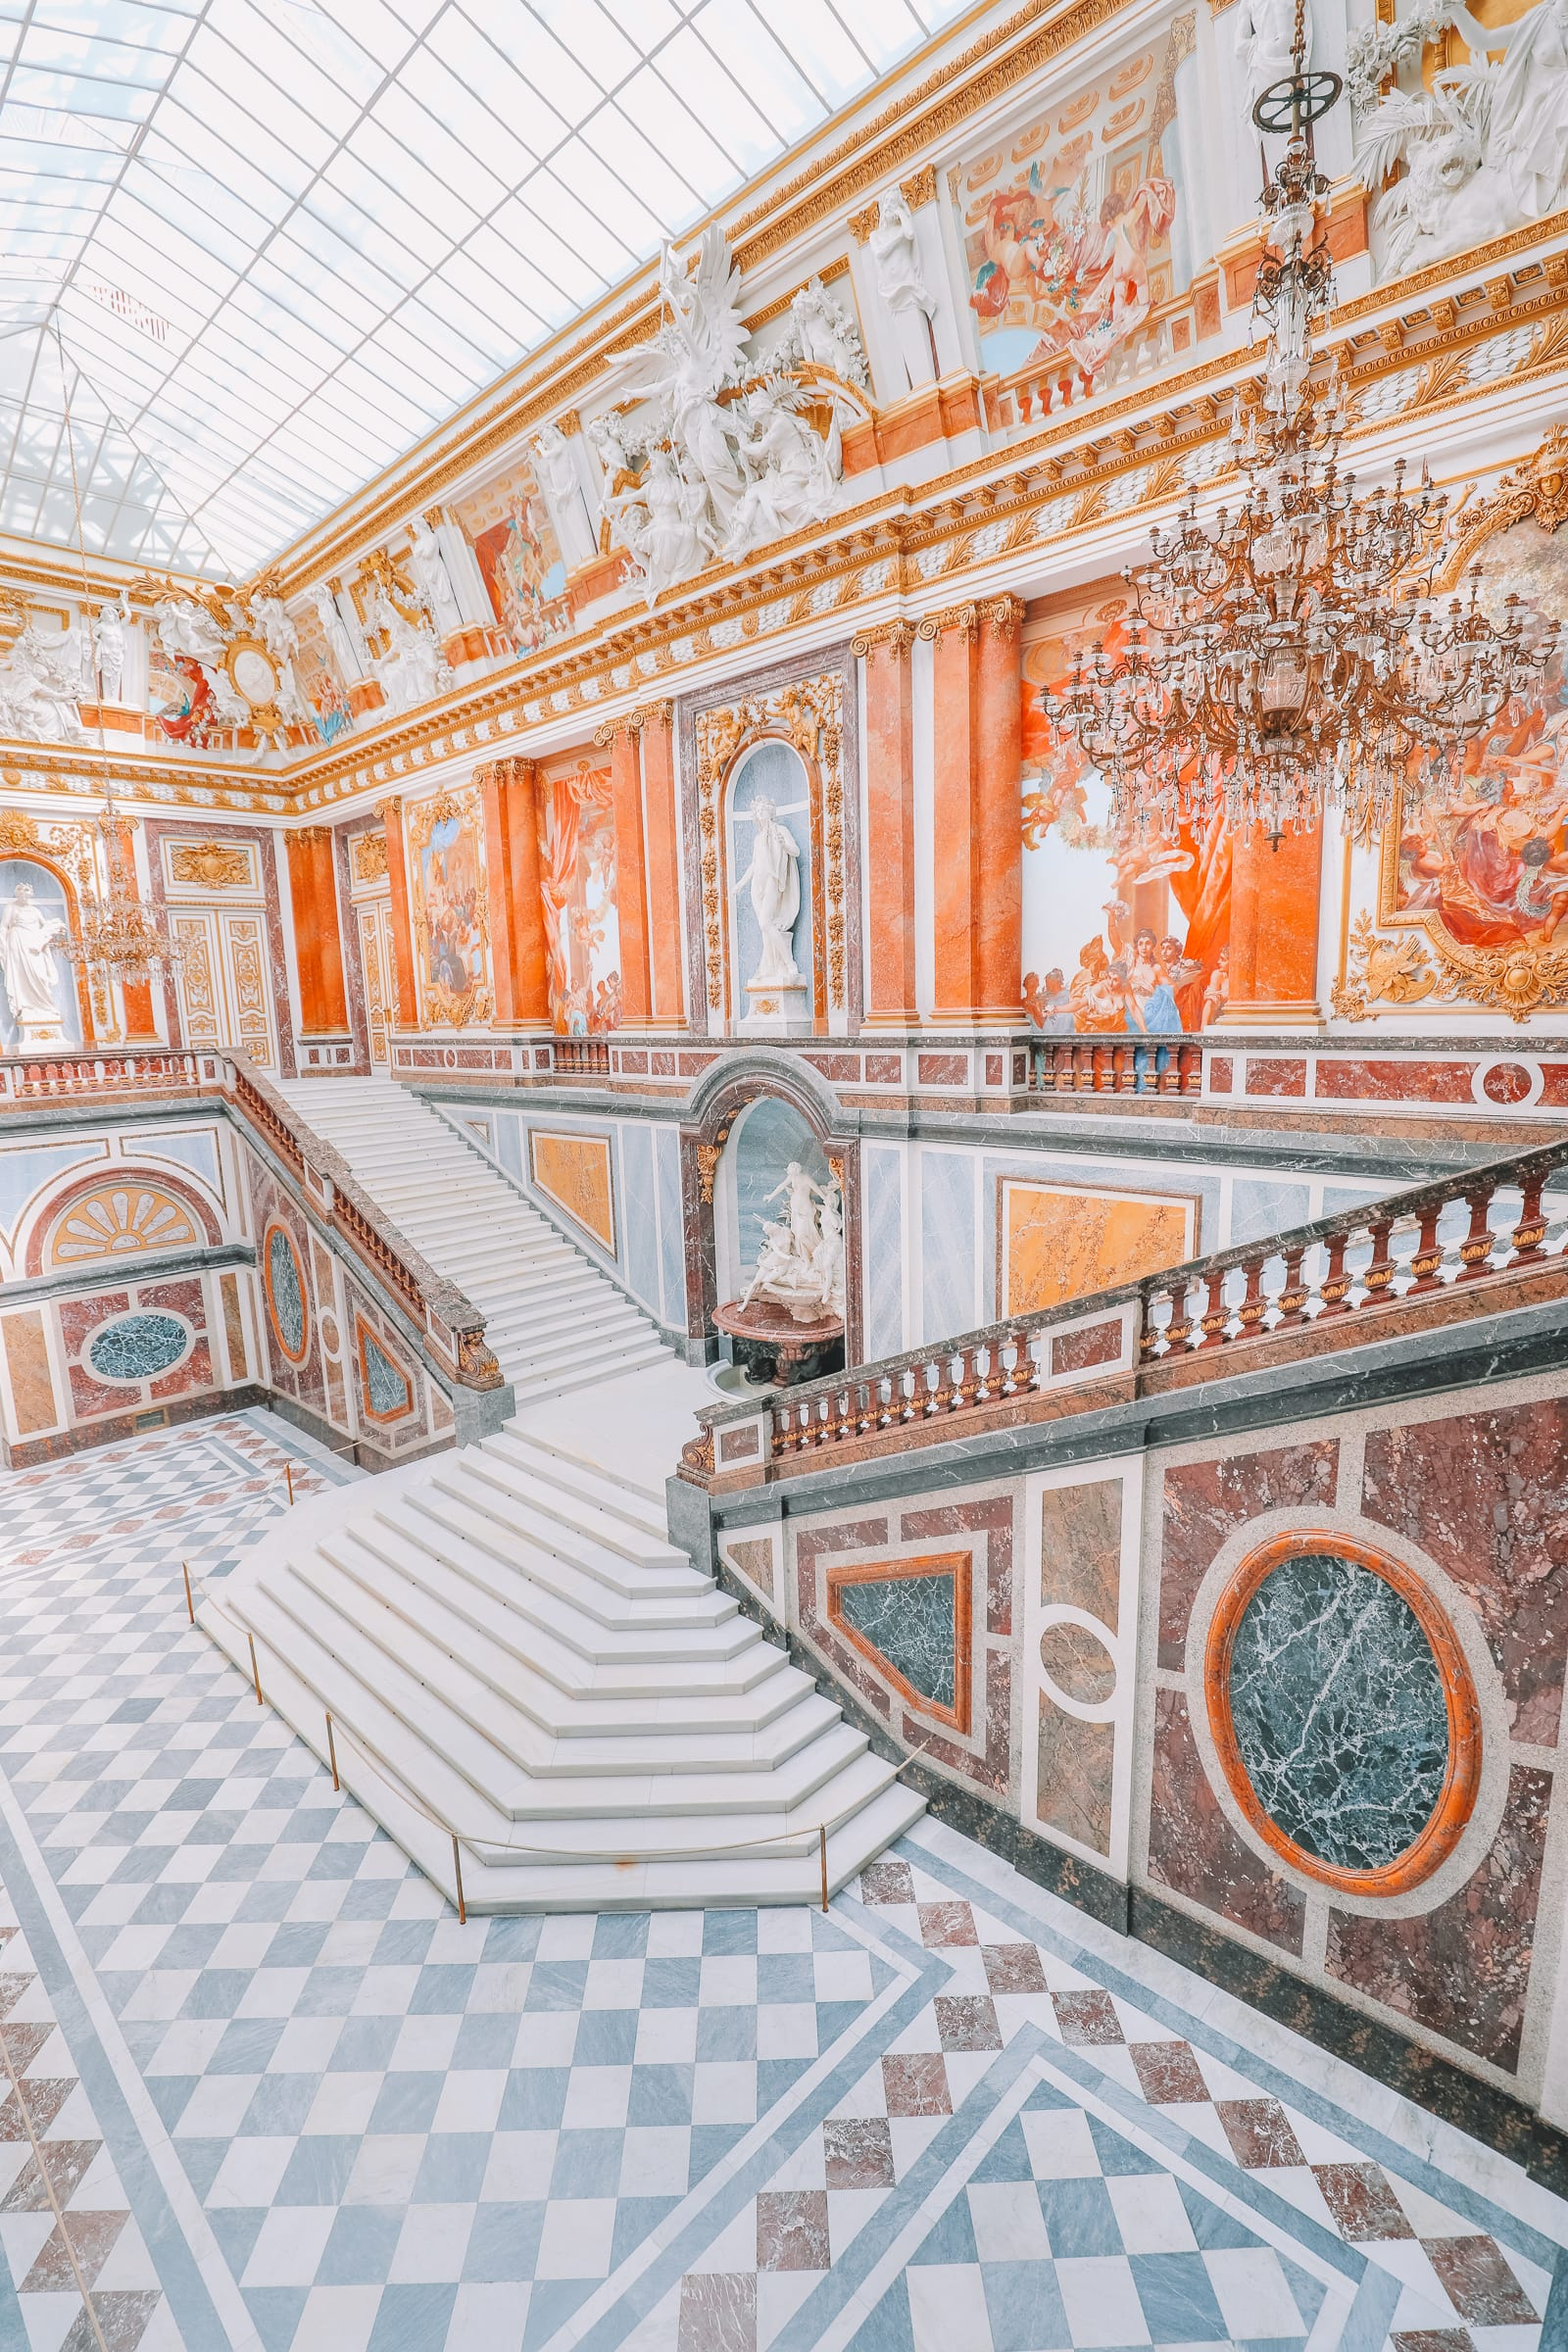 Herrenchiemsee Palace - One Of The Most Beautiful And Grandest Palaces In Germany You Have To Visit! (18)